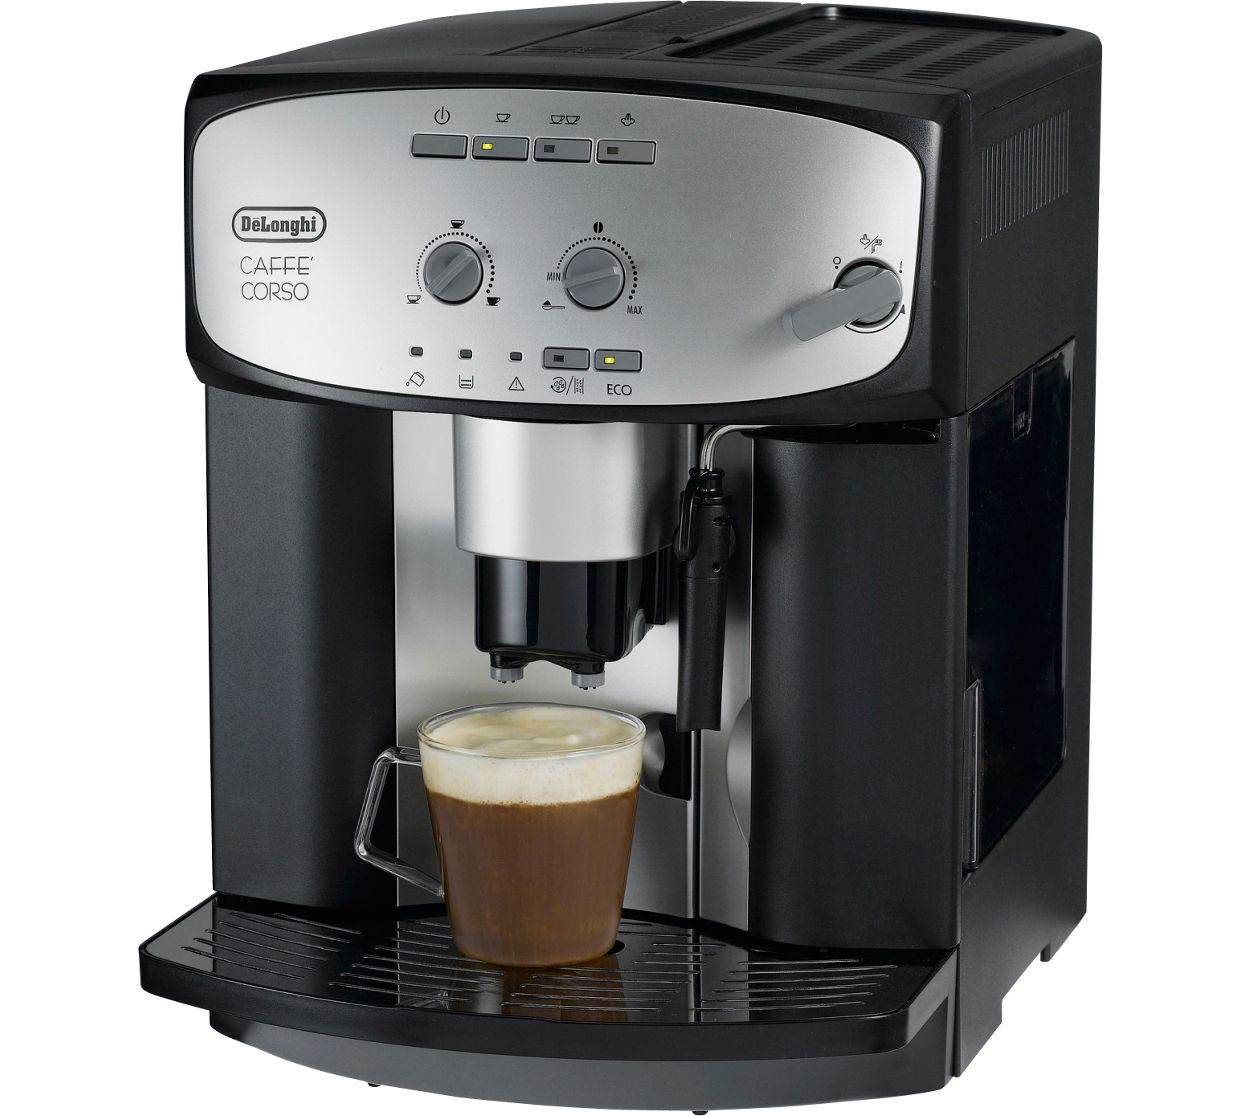 de longhi esam2800 cafe corso bean to cup coffee machine at argos uk. Black Bedroom Furniture Sets. Home Design Ideas